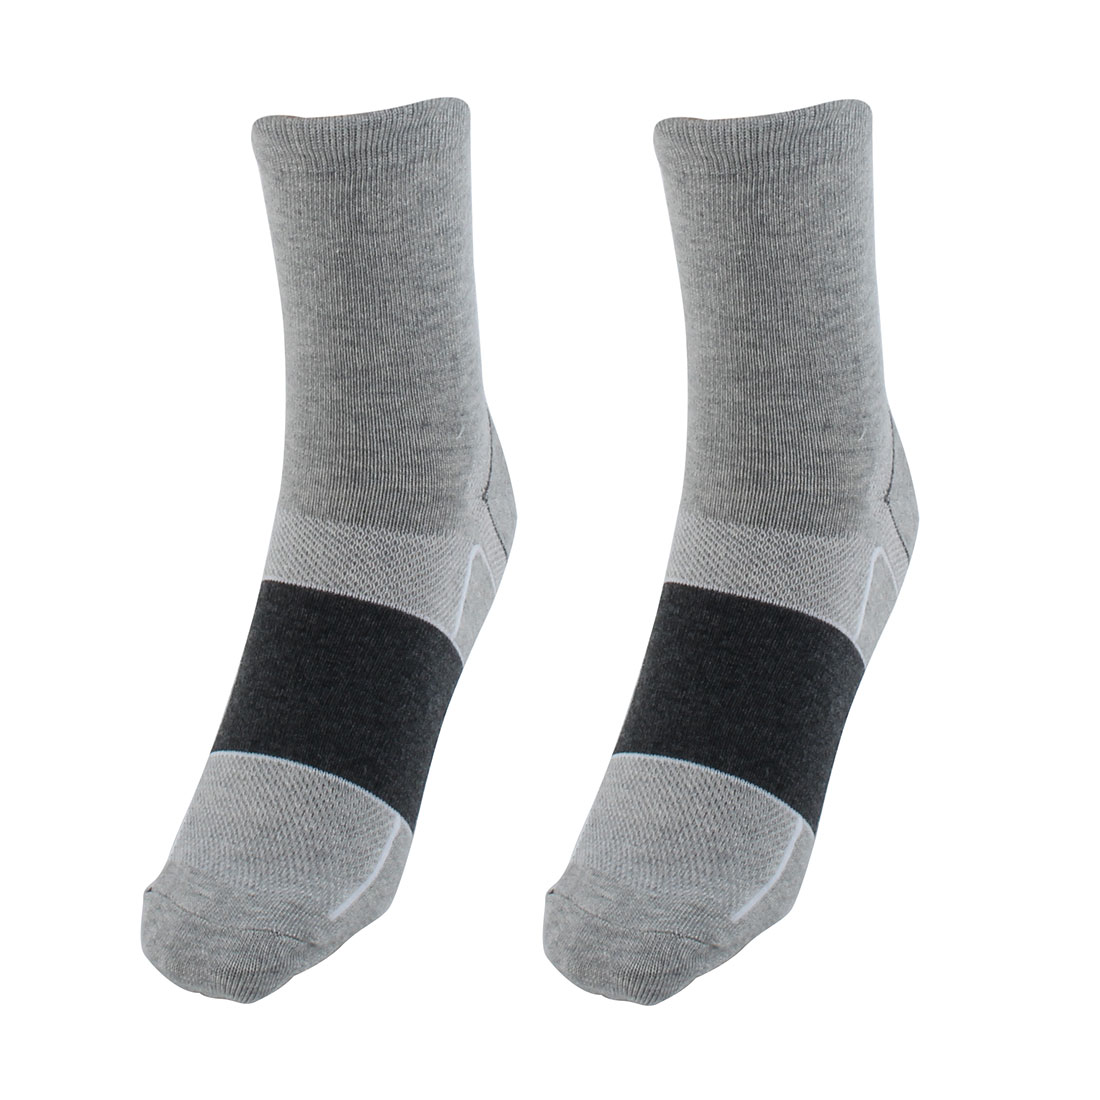 R-BAO Authorized Bicycle Basketball Mountain Bike Cotton Blend Breathable Sports Cycling Socks Gray Pair